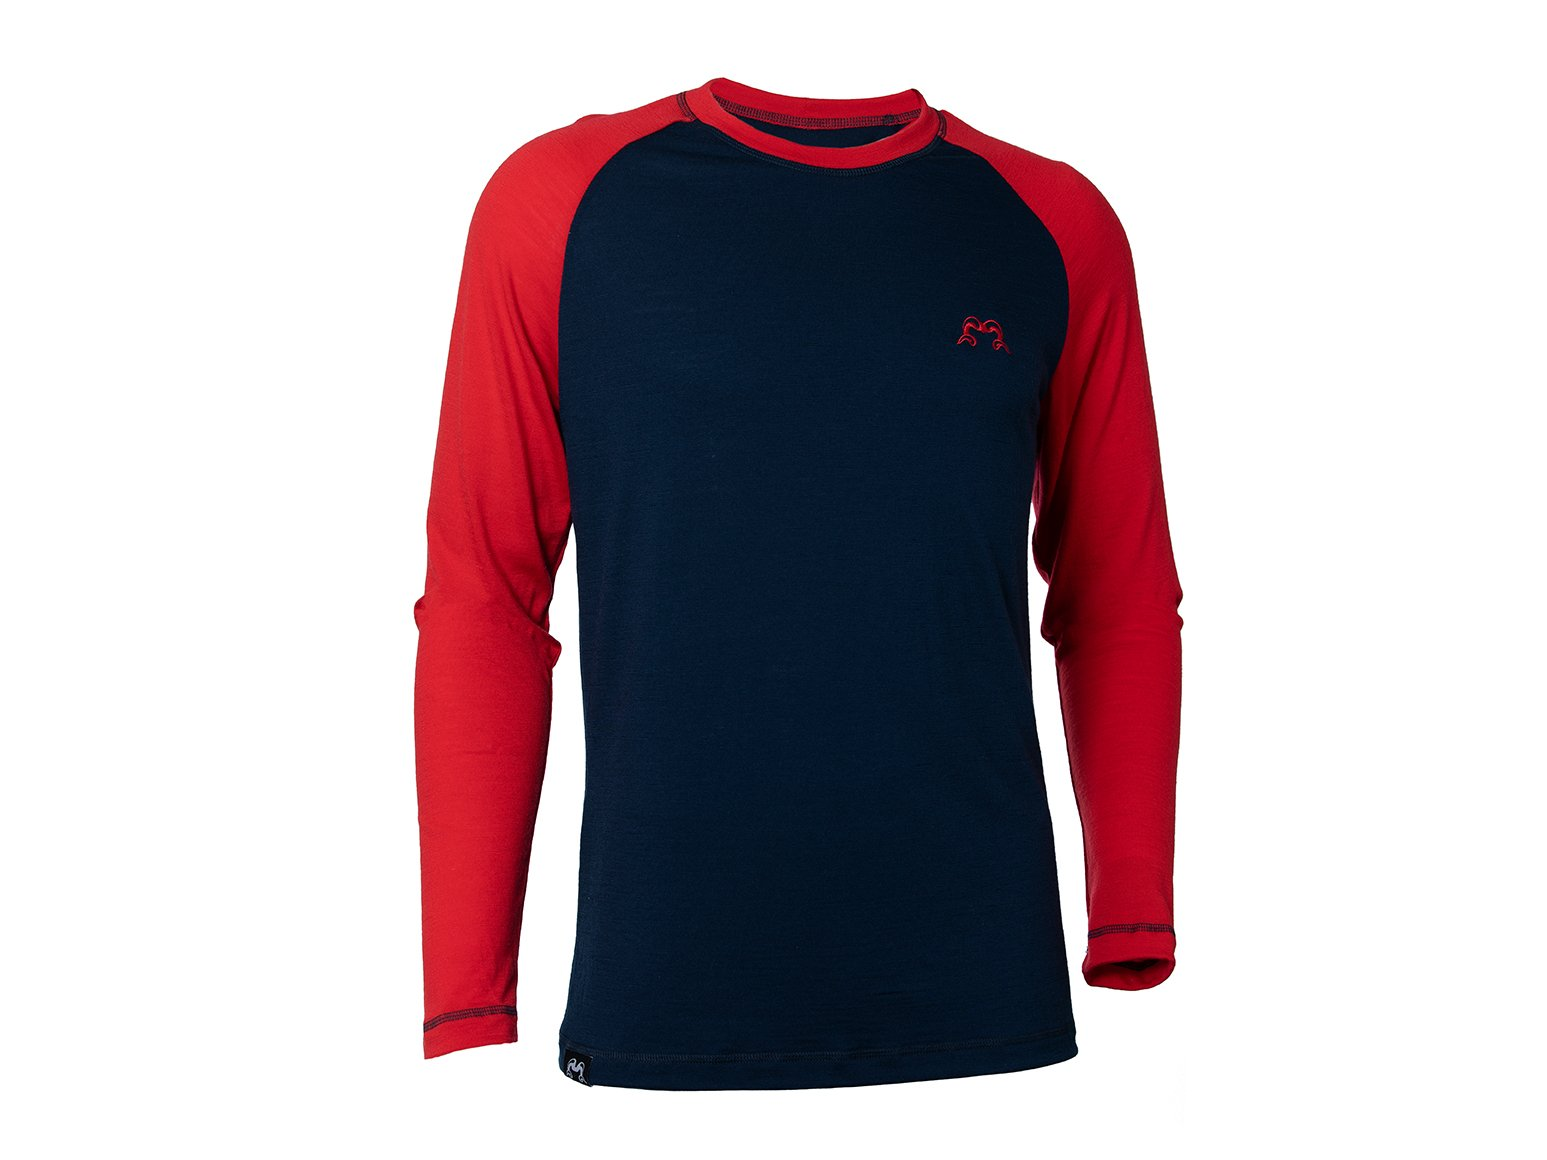 True Fleece Men's merino wool 200 long sleeve base layer top - Navy & Red